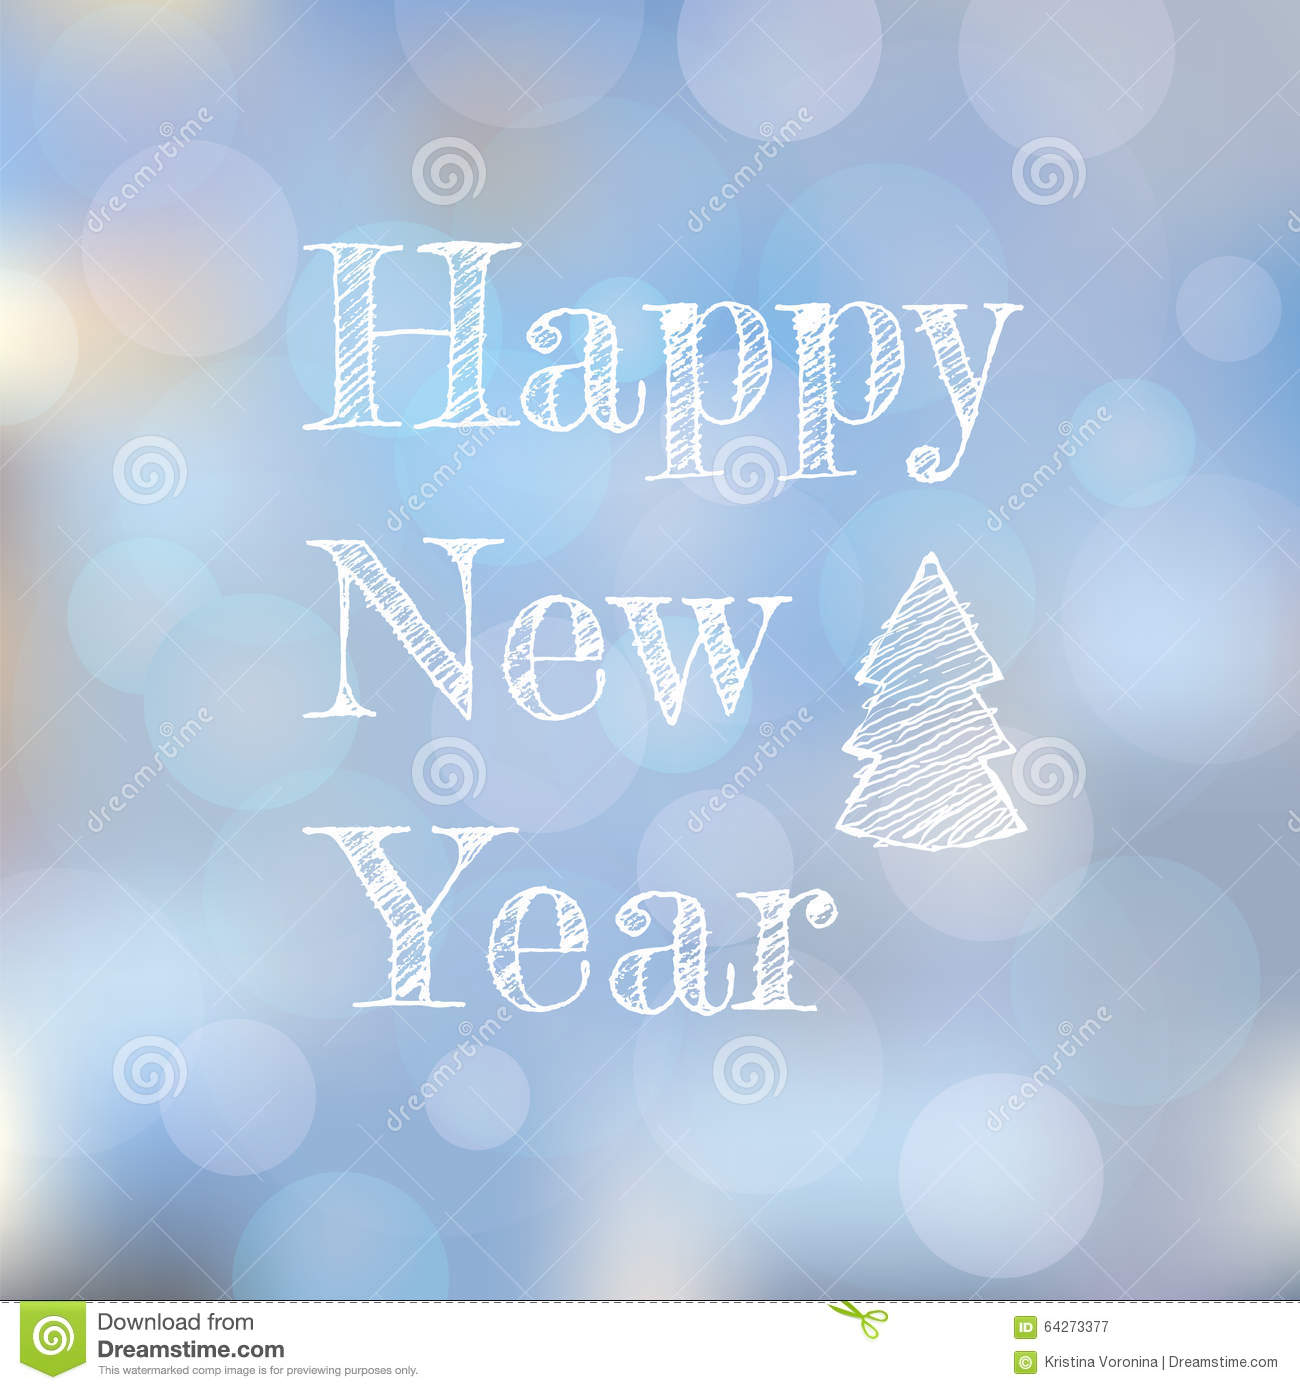 New Year greeting card on light blurred background